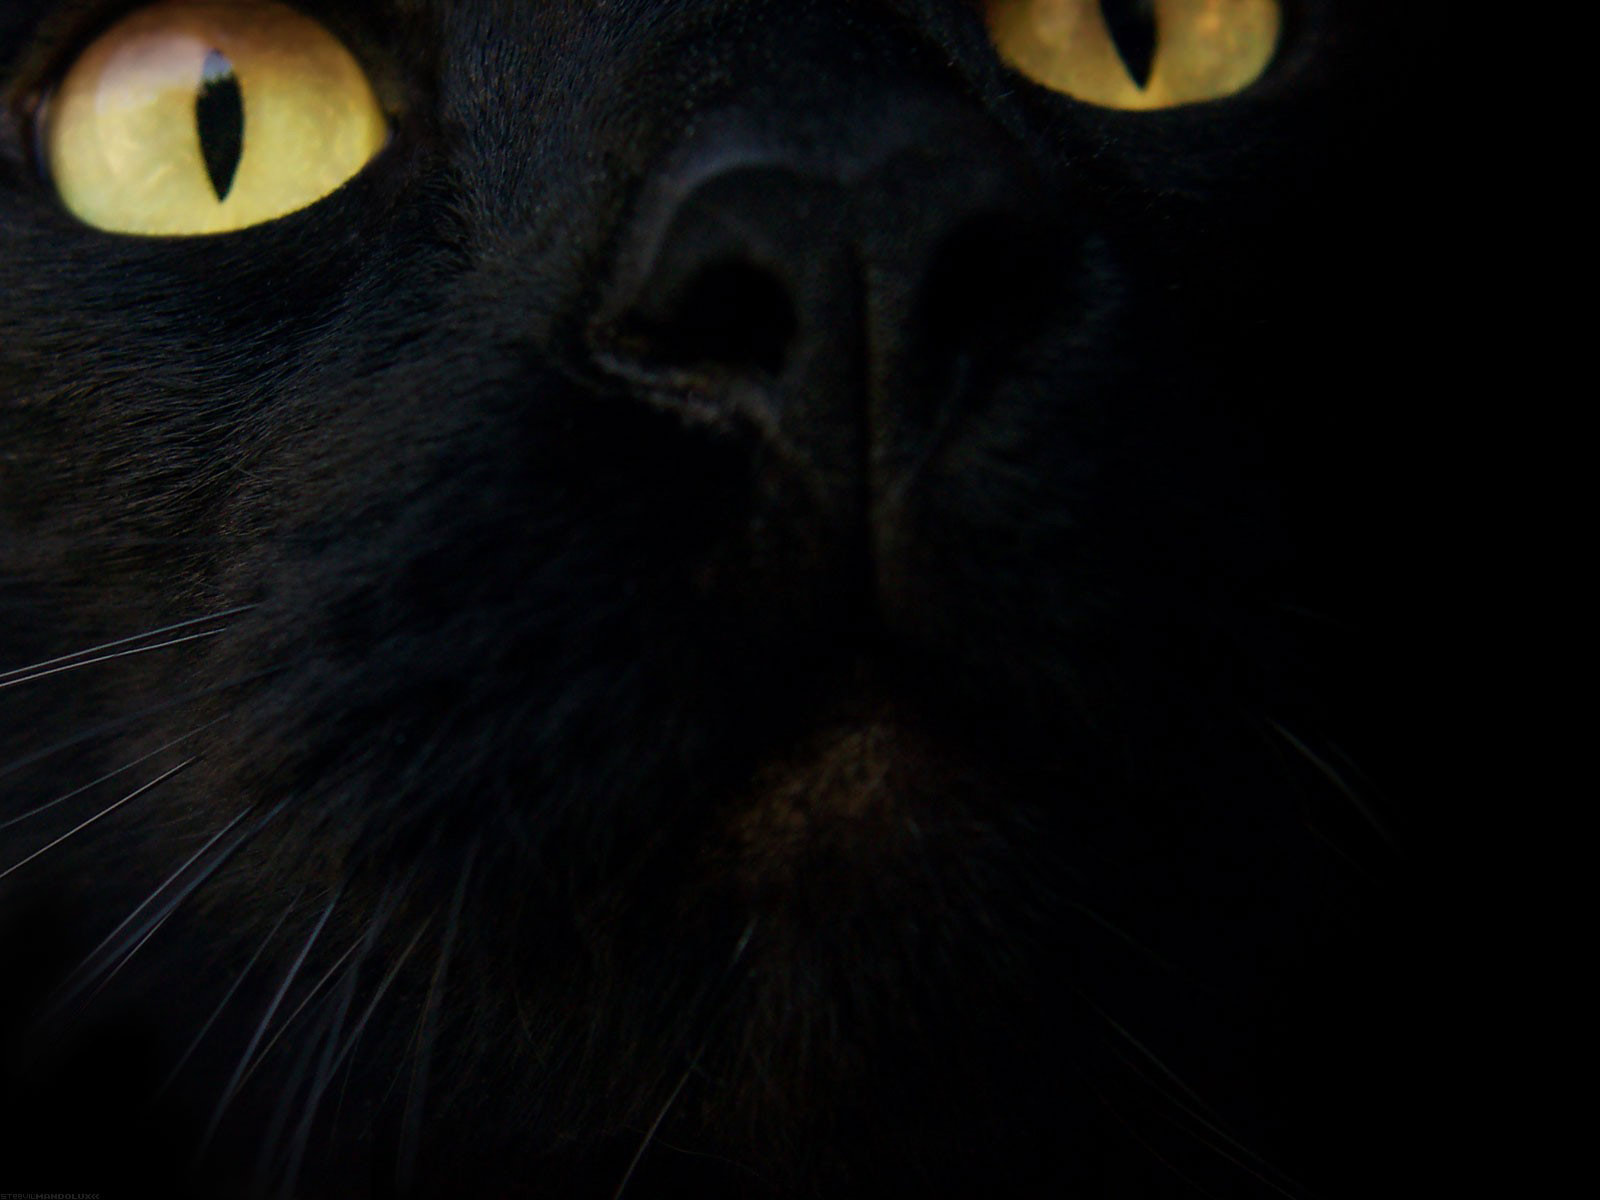 black images black cat wallpaper hd wallpaper and background photos